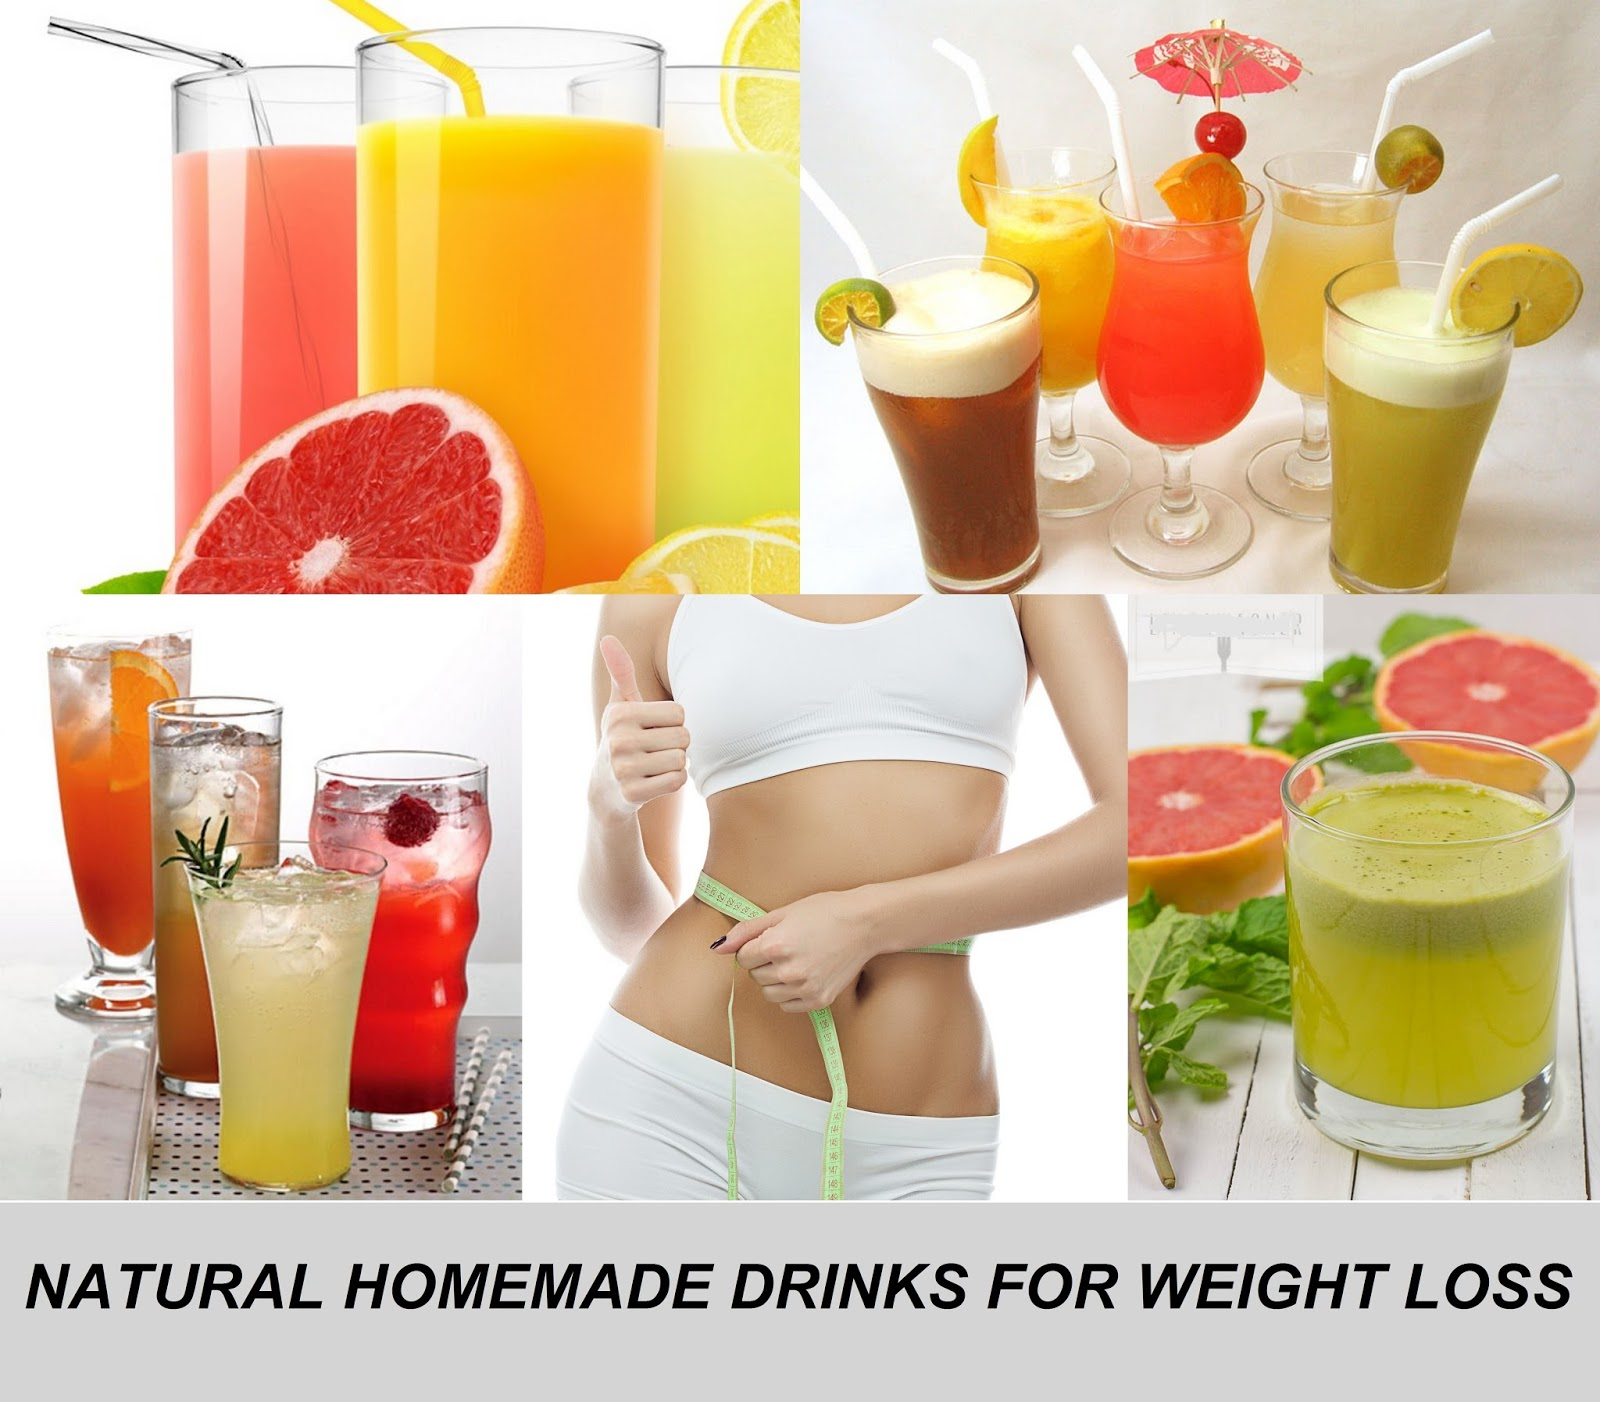 Tips on Detox Drinks for Losing Weight